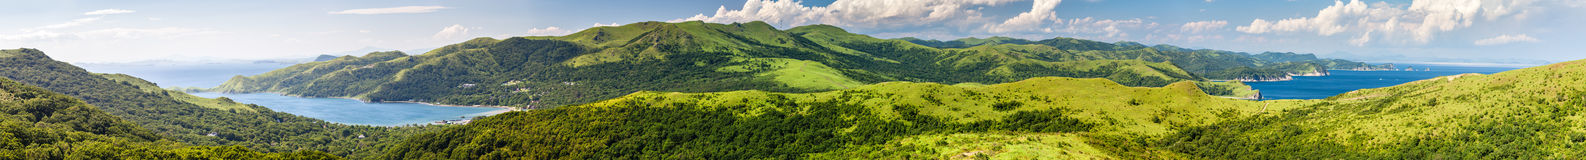 Long panorama of the Russian resort area of the Sea of Japan Royalty Free Stock Image